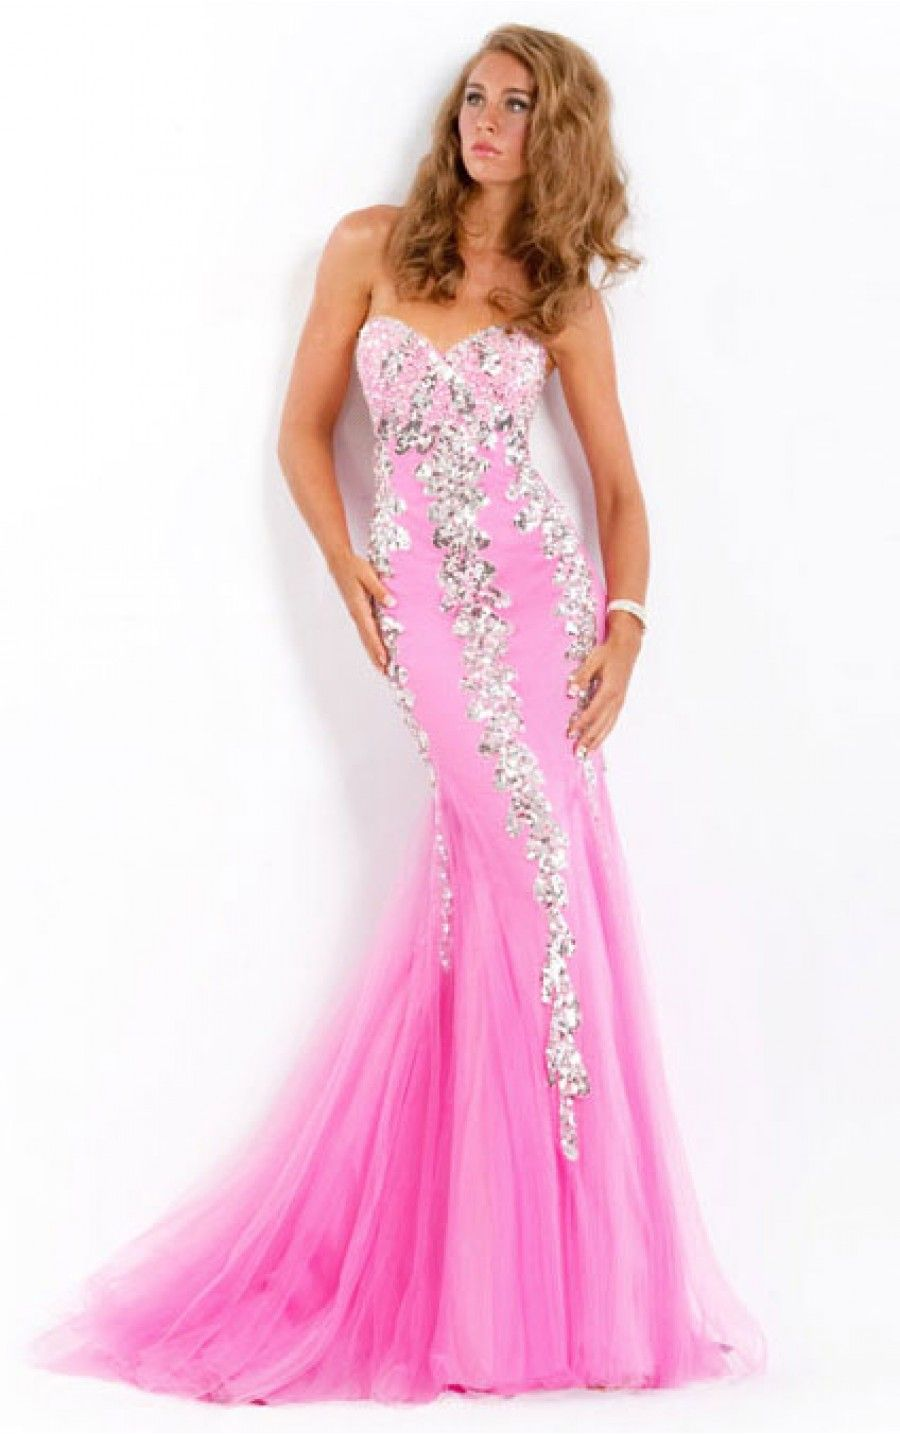 Pink mermaid prom dress notice use of undefined constant php